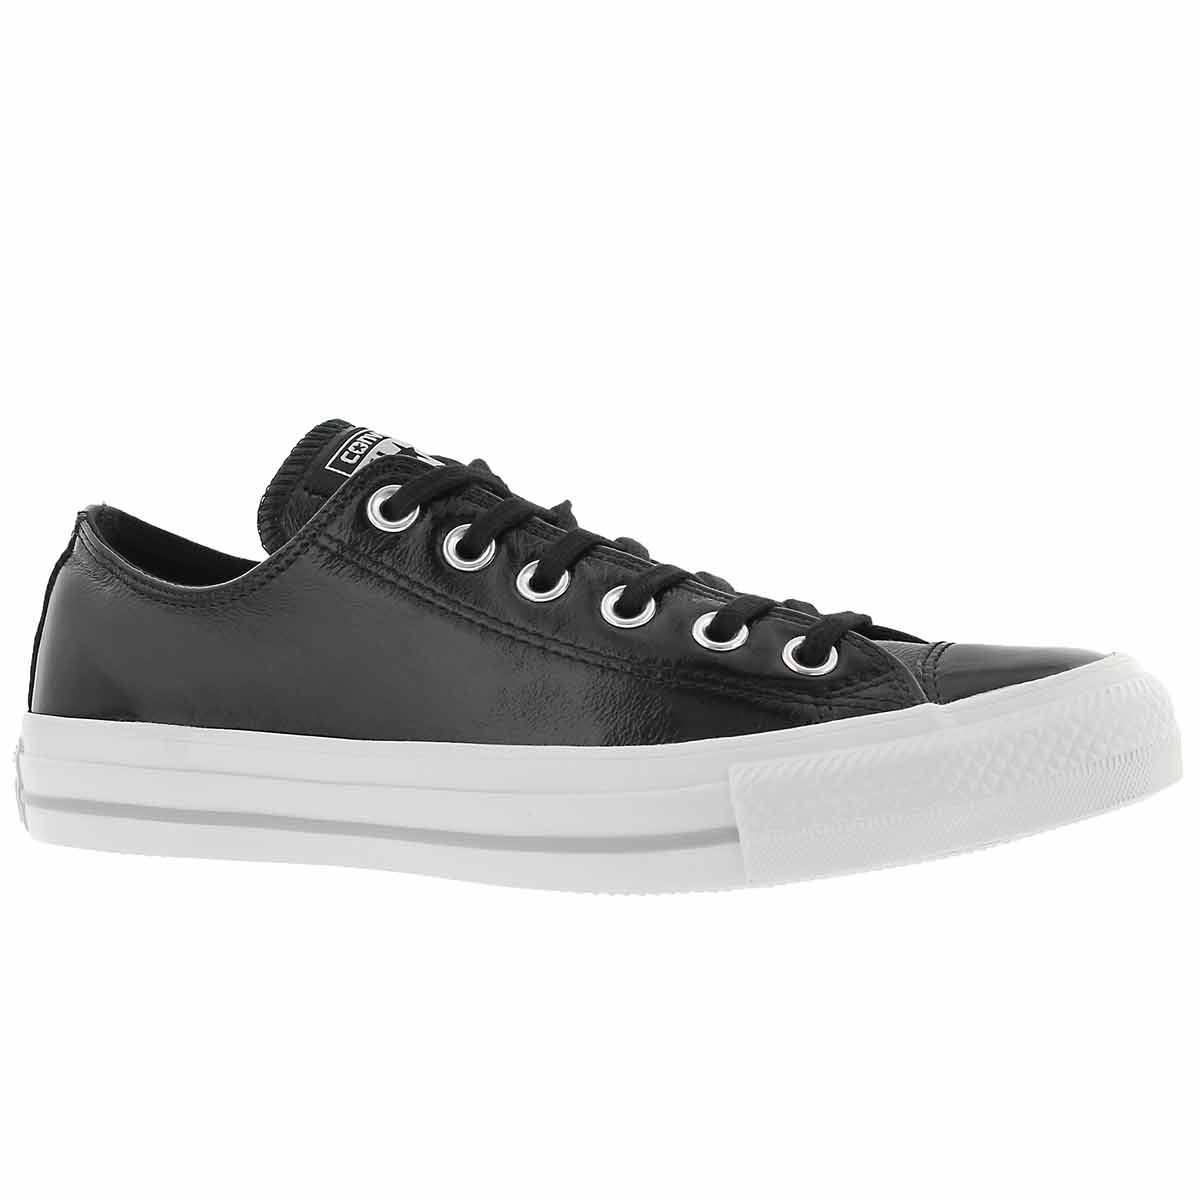 Women's CT ALL STAR CLASSIC CRINKLED blk sneakers